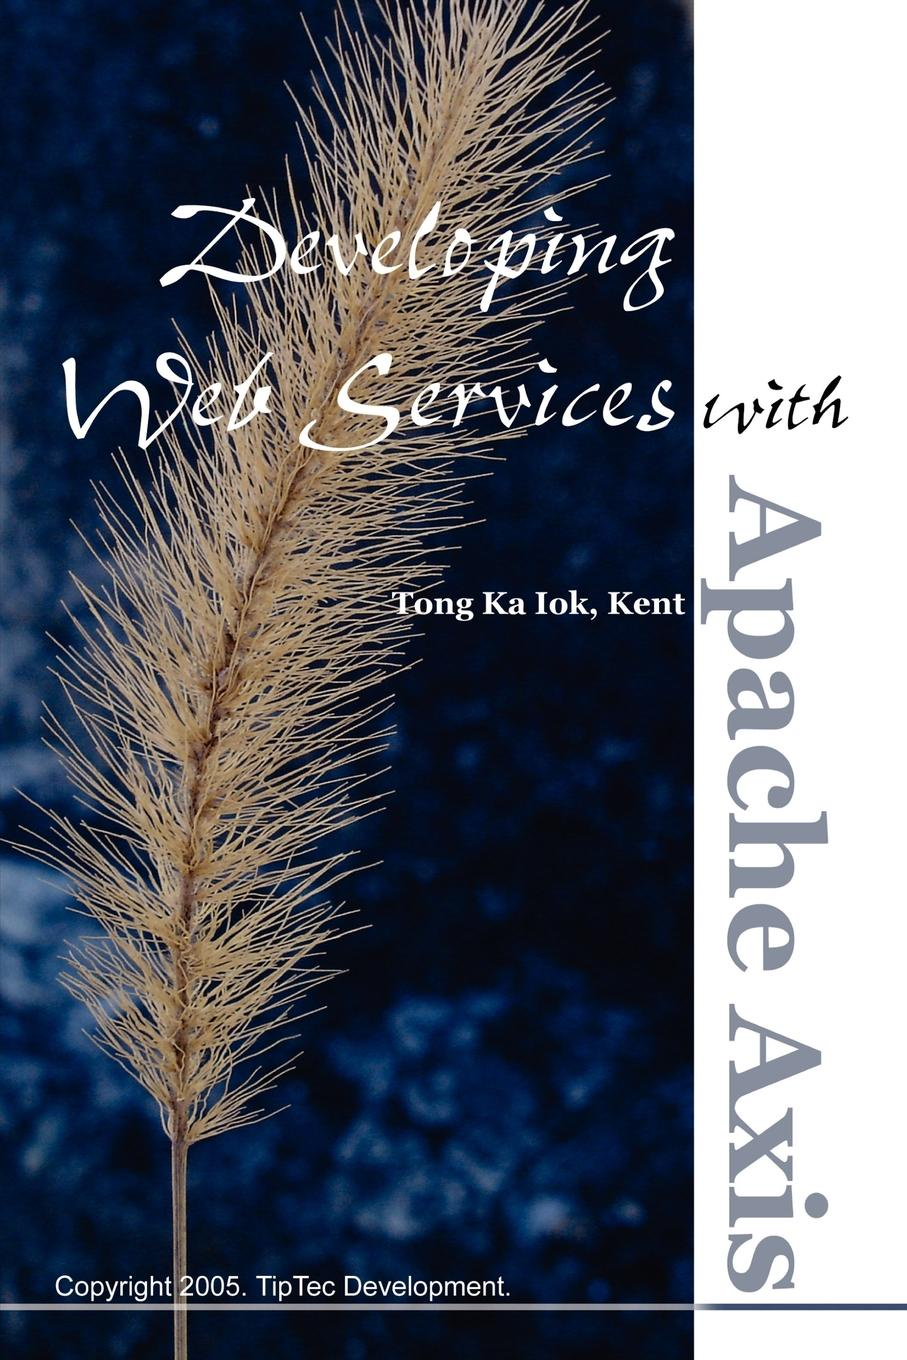 Kent Ka Iok Tong Developing Web Services with Apache Axis theodore leung w professional xml development with apache tools xerces xalan fop cocoon axis xindice